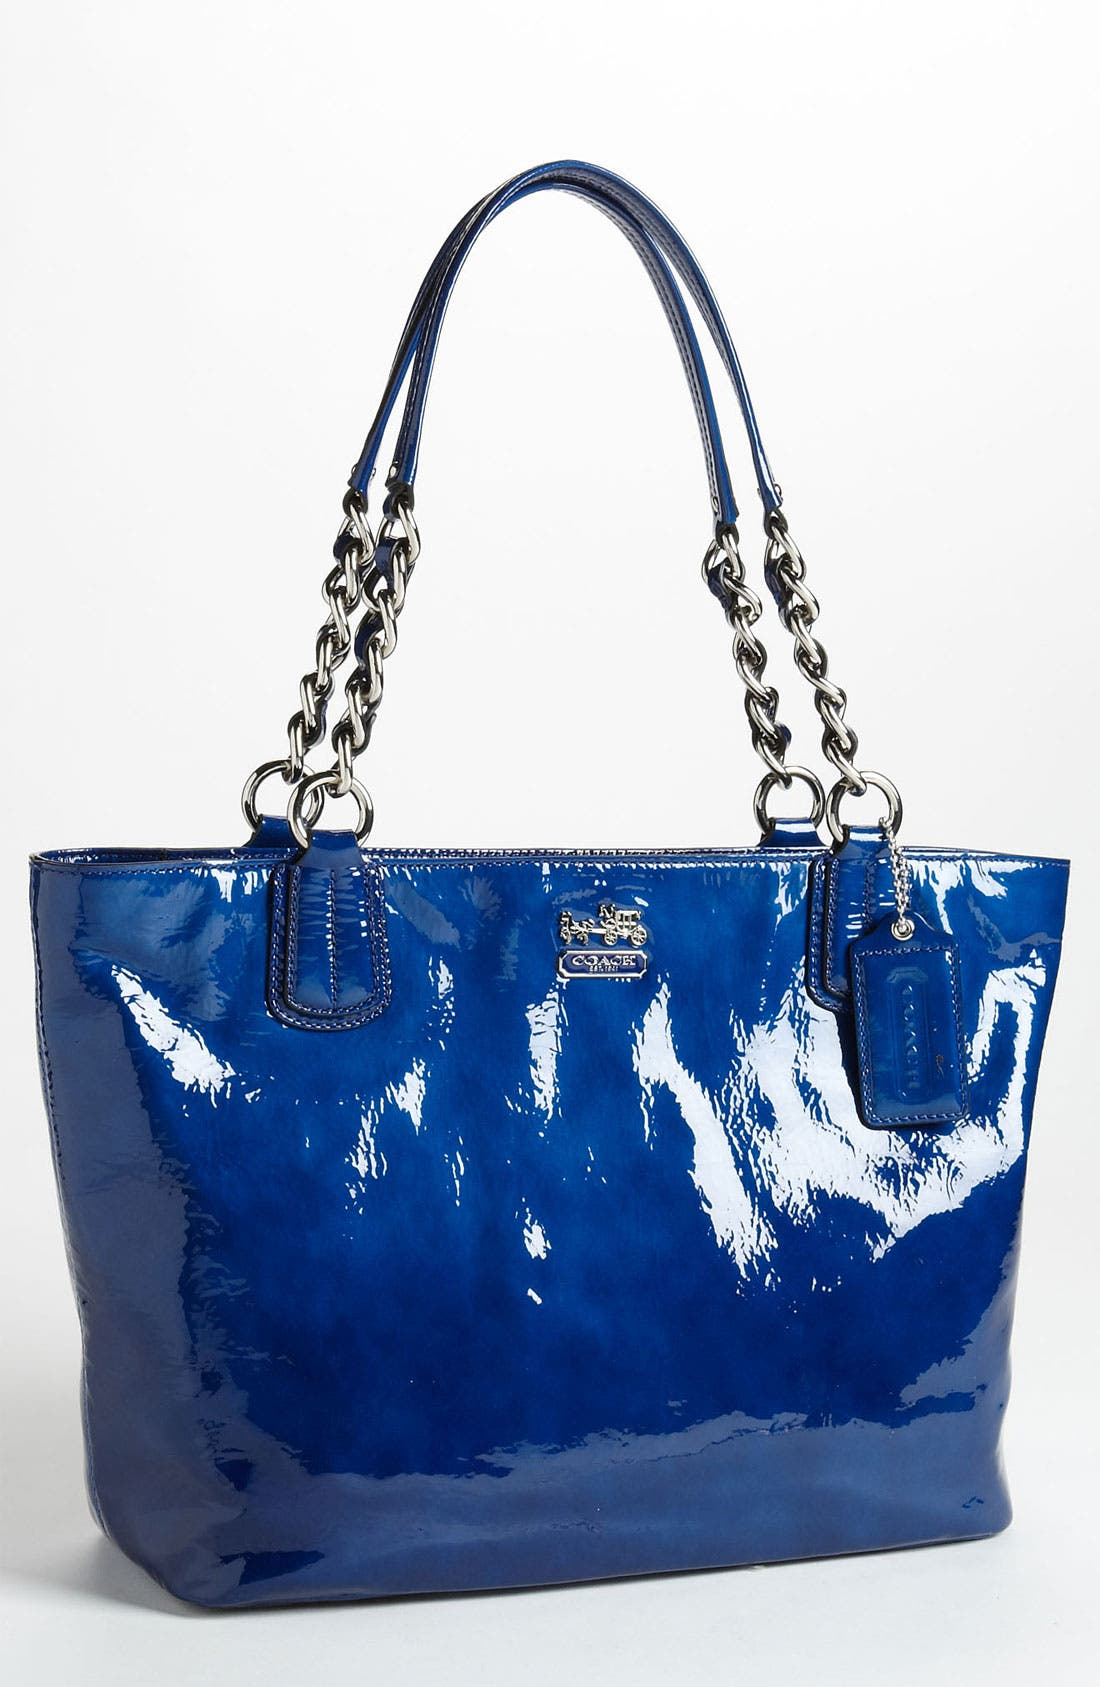 Alternate Image 1 Selected - COACH 'Madison' Patent Leather Tote